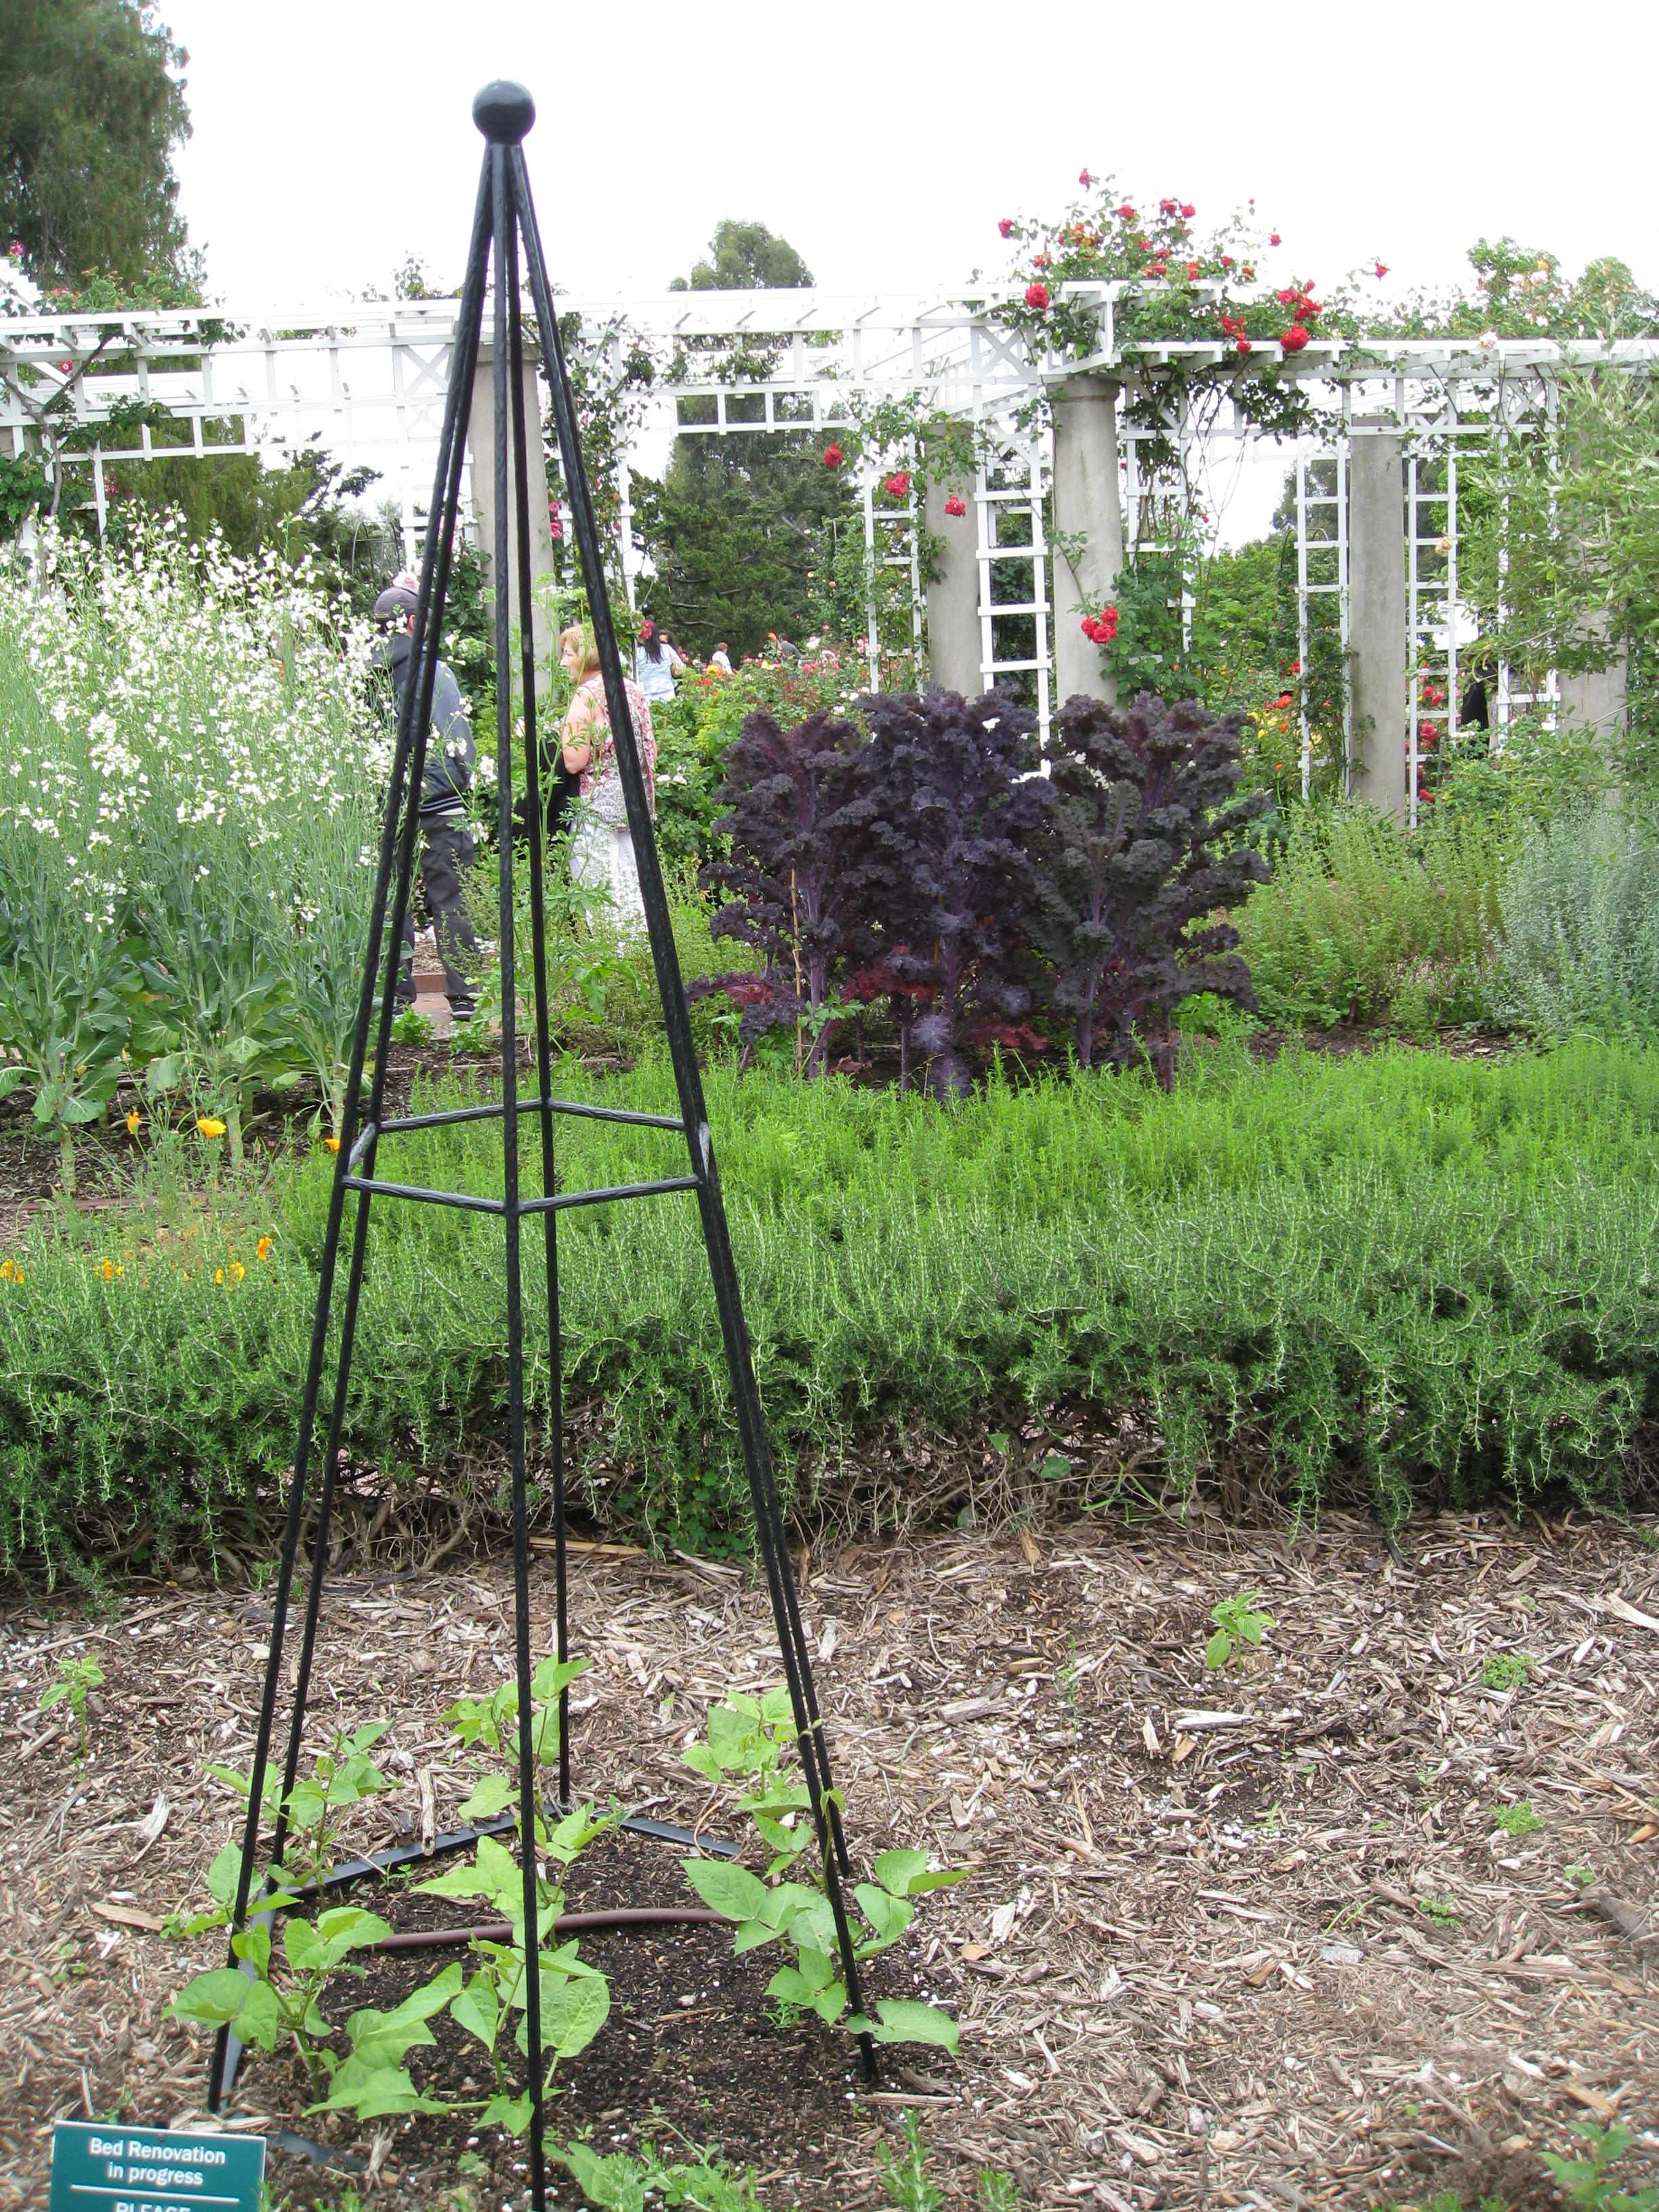 Beans begin their climb up a trellis as red kale bolts to seed. Old and new coexist in harmony.